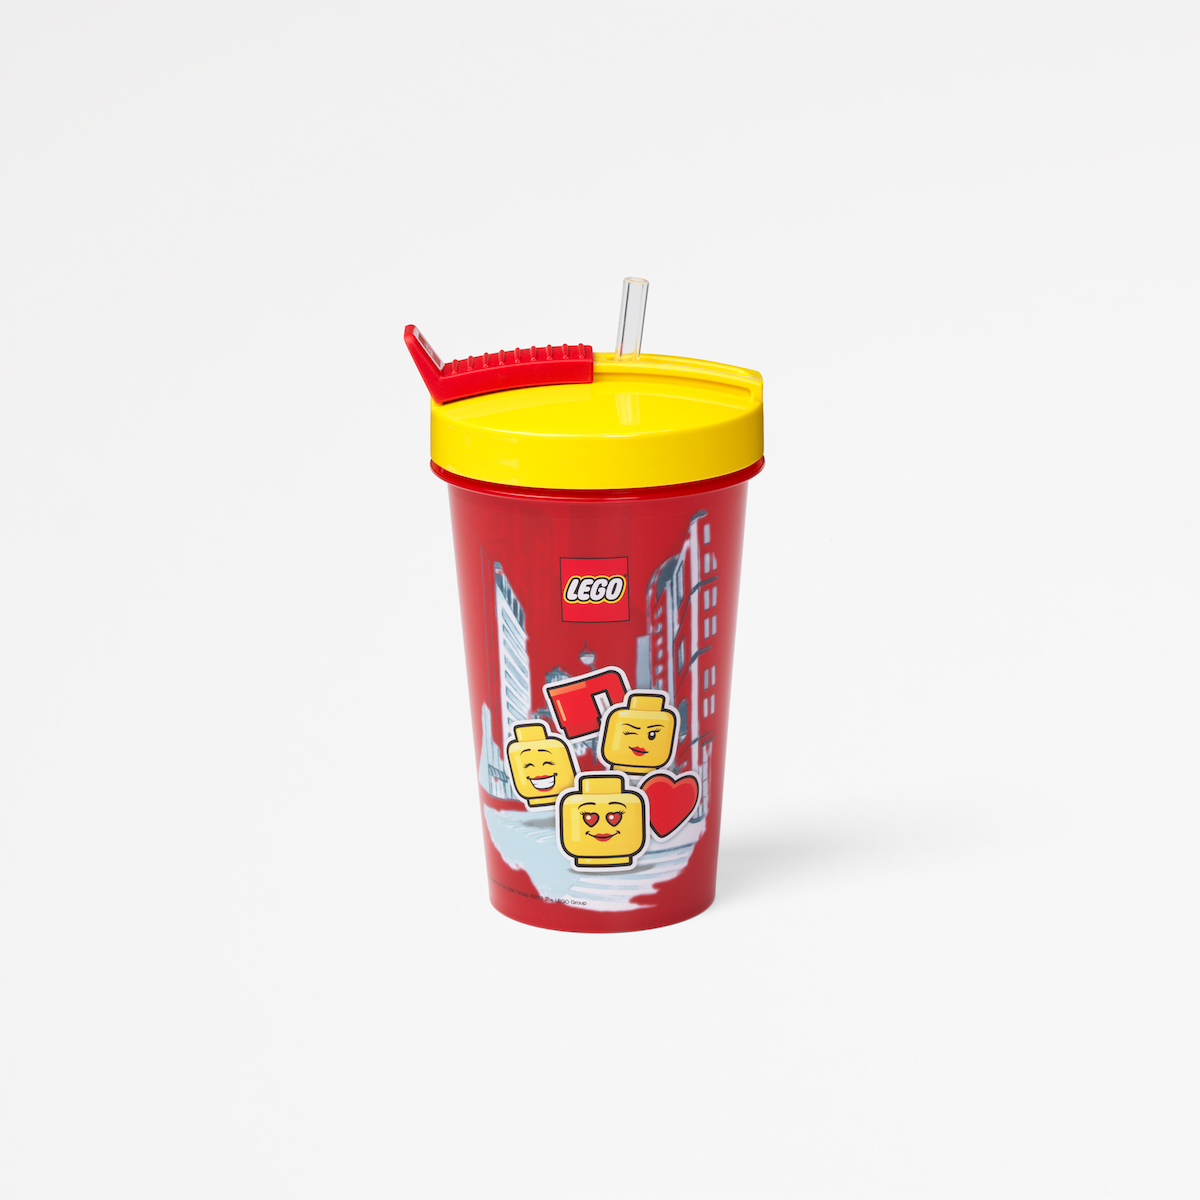 Lego tumbler with straw, healthy, drinking, kid, play, lunch, yellow